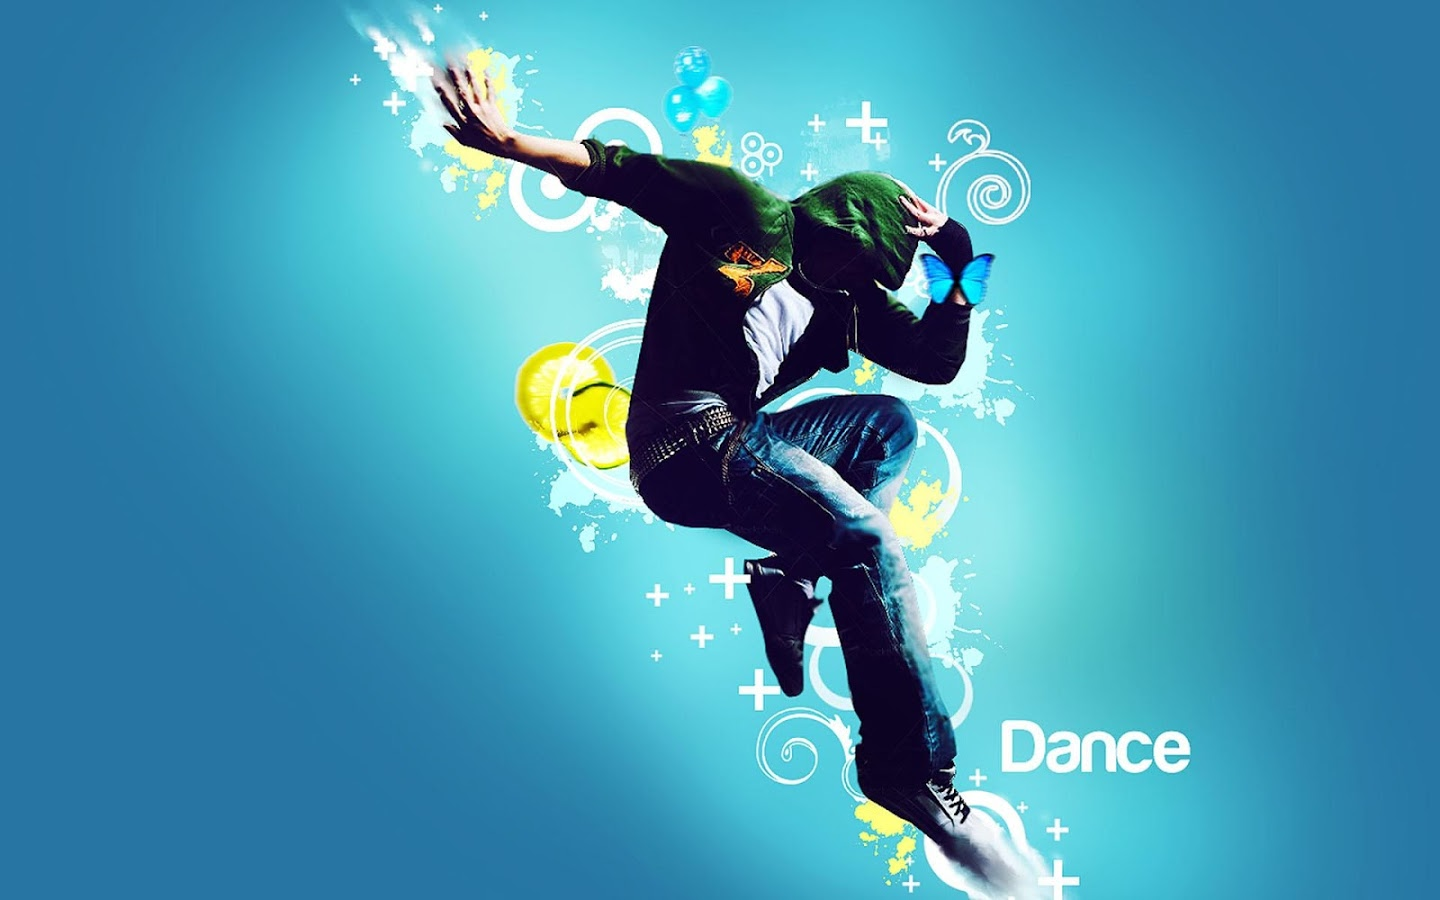 Dance Live Wallpaper - Android Apps on Google Play